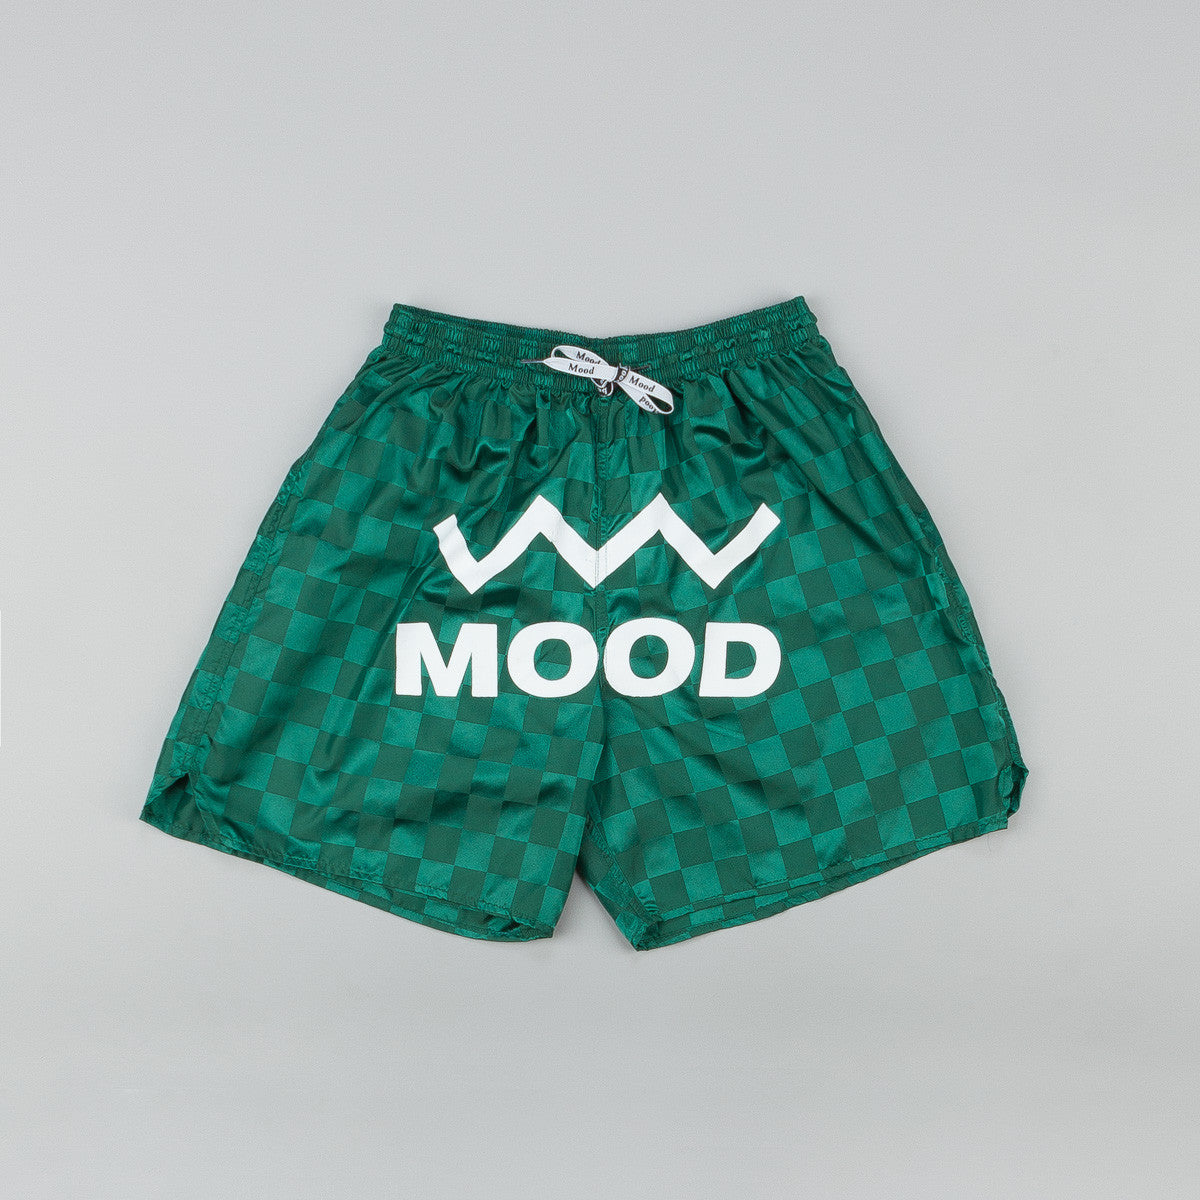 Mood NYC Soccer Club Shorts